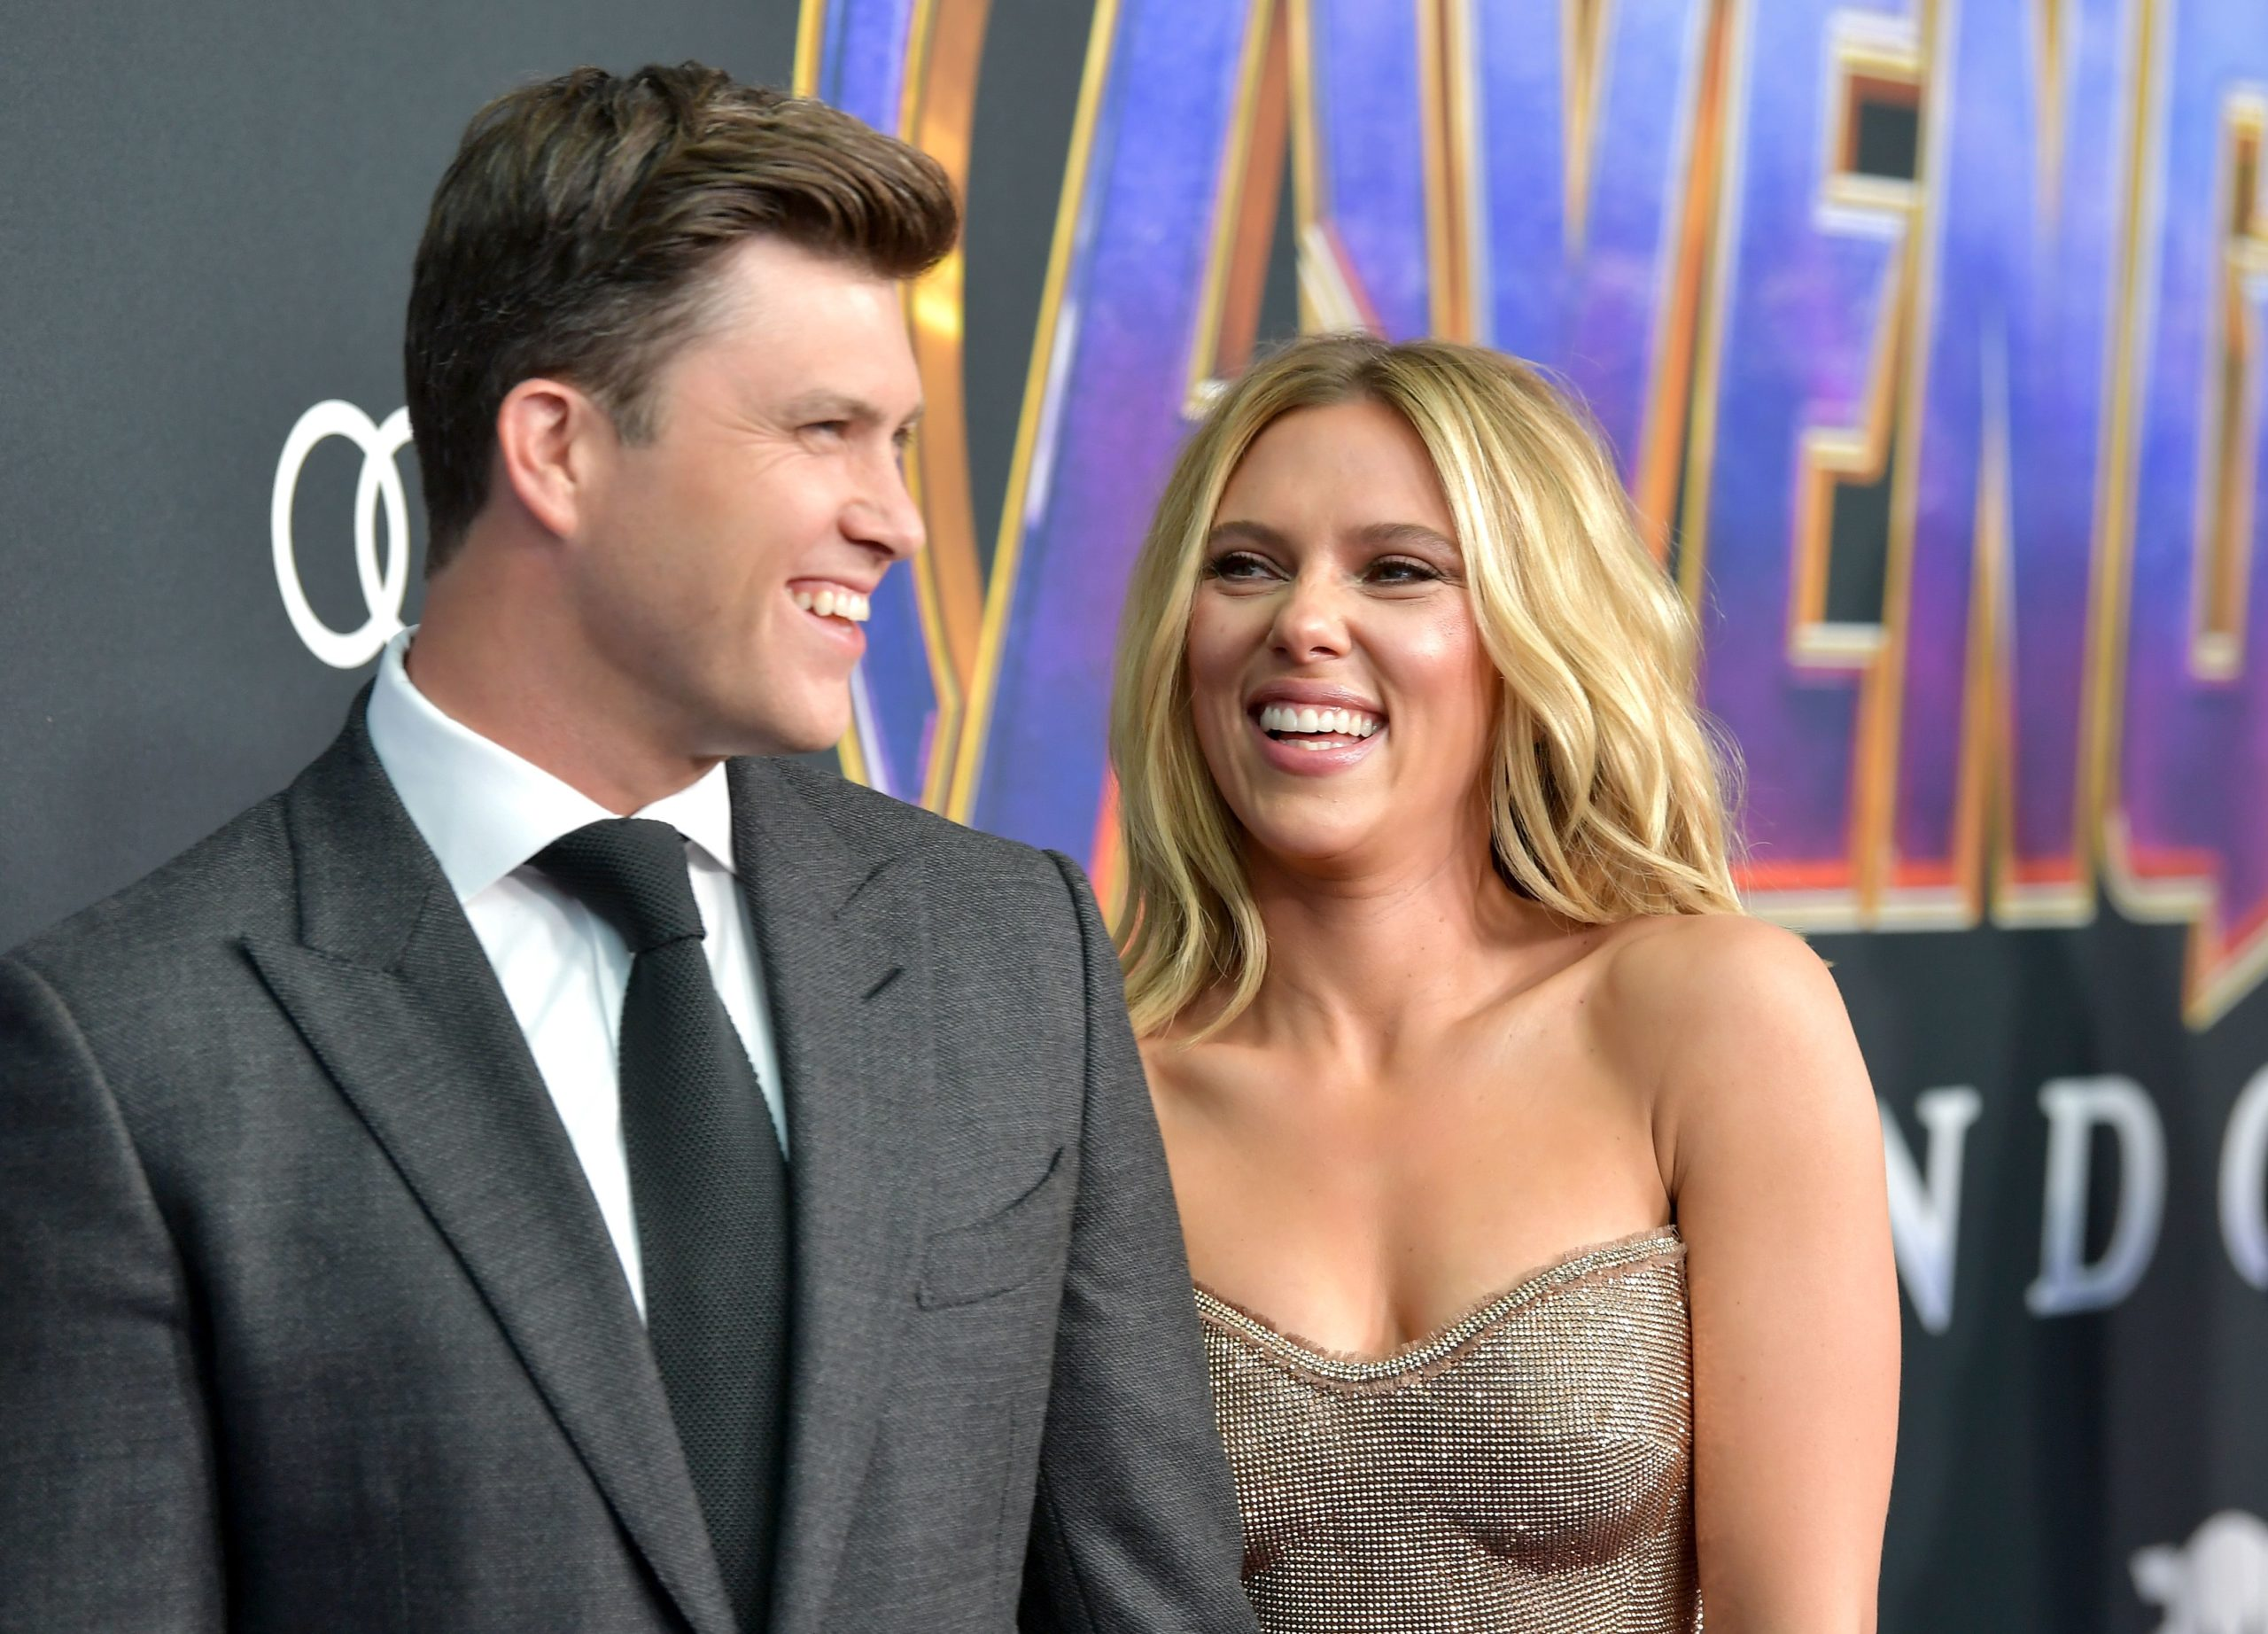 Scarlett Johansson and Colin Jost to have a Special Rooftop Wedding